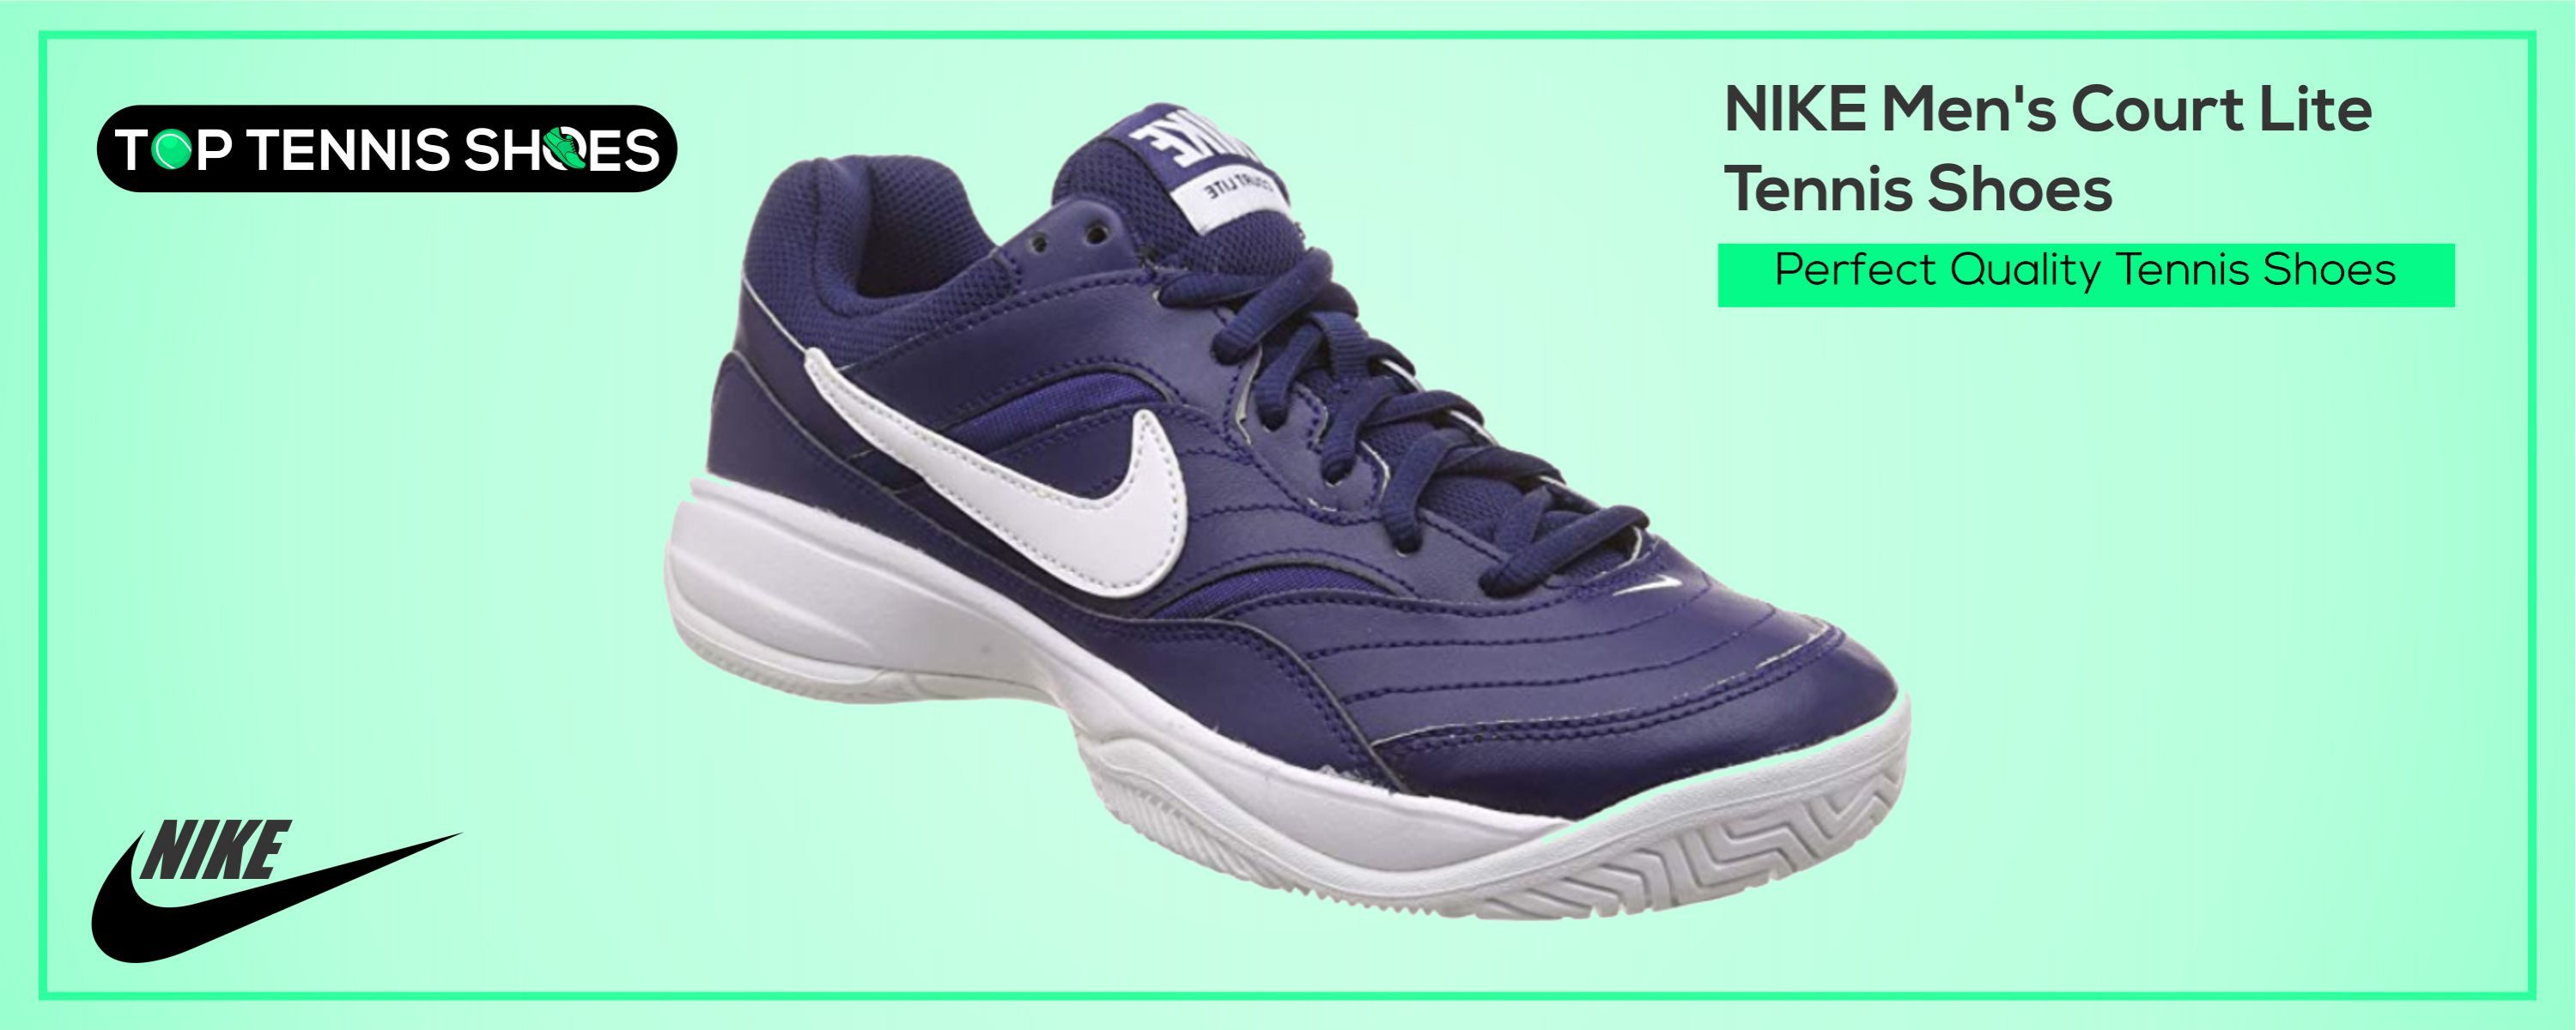 Perfect Quality Tennis Shoes